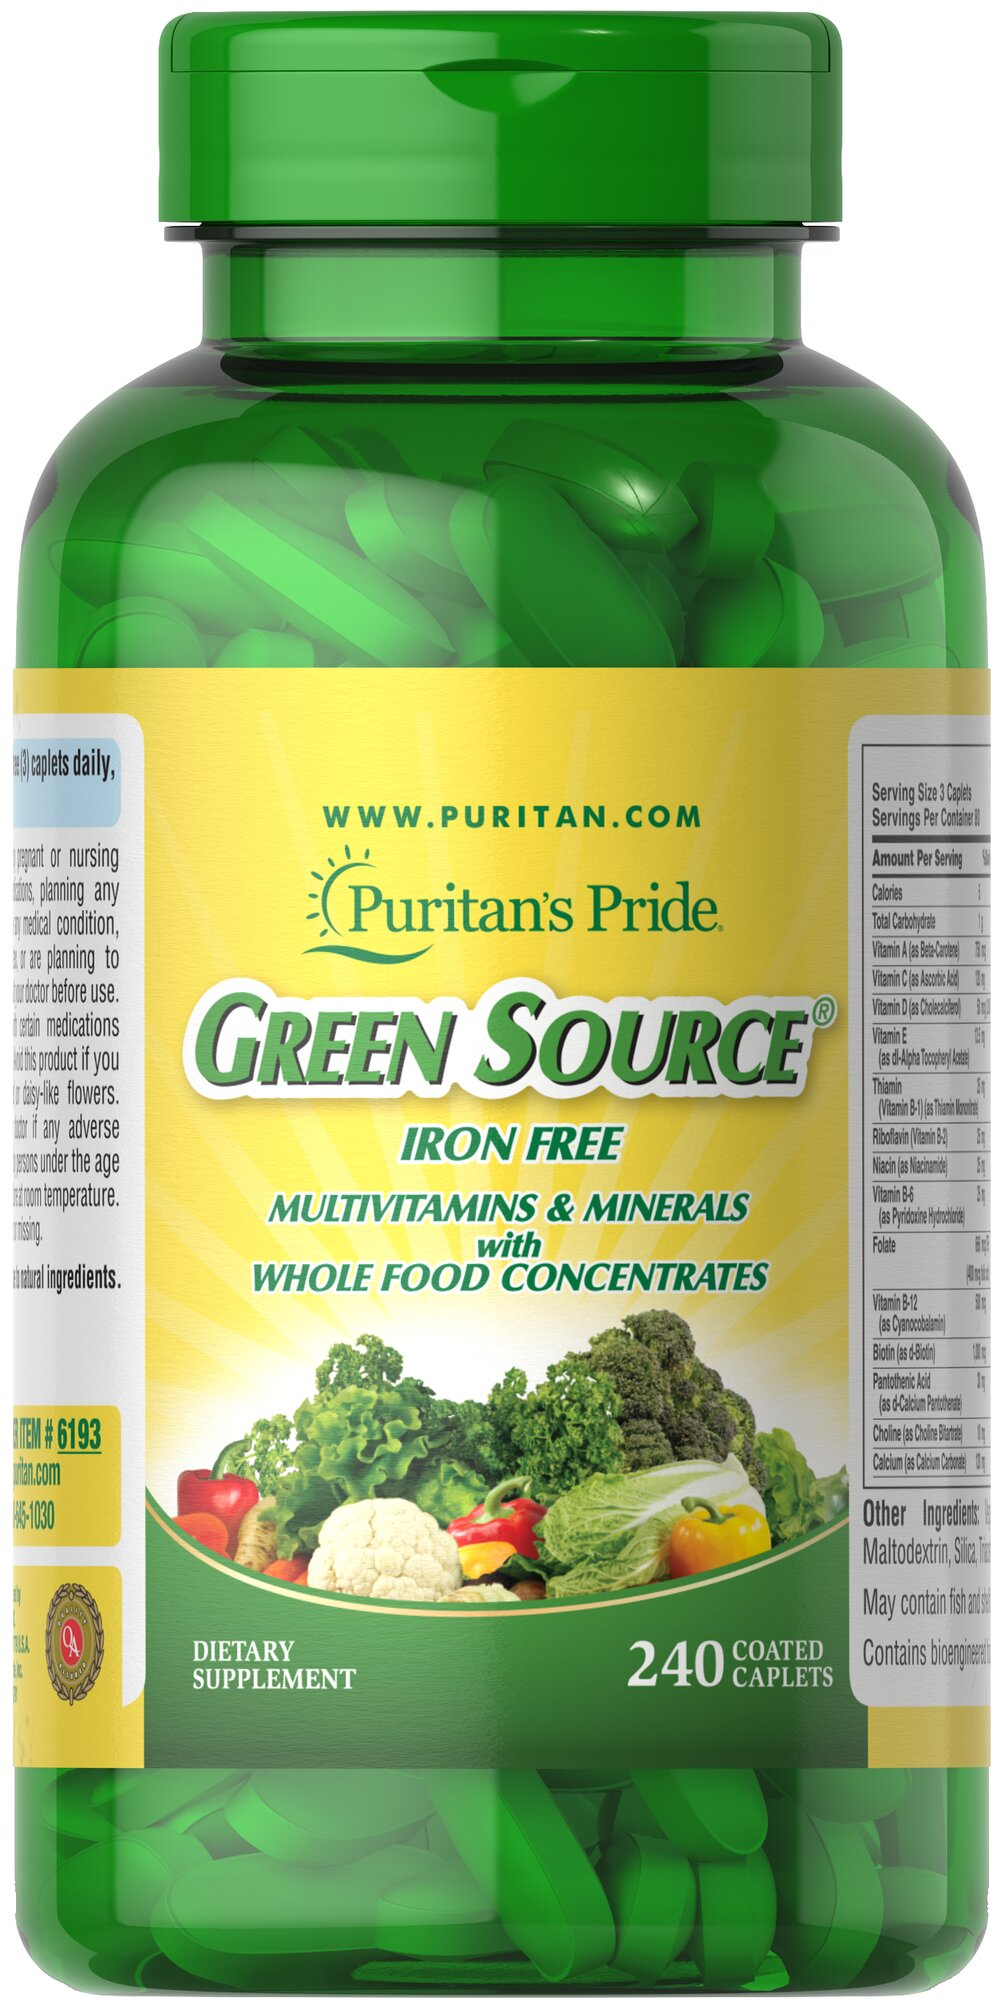 Green Source® Iron Free Multivitamin & Minerals <p>This concentrated formula is Iron Free and contains potent food source nutrients to provide essential vitamins, minerals, enzymes and amino acids. It also provides all the naturally occurring active constituents of whole foods. </p> 240 Caplets  $63.79